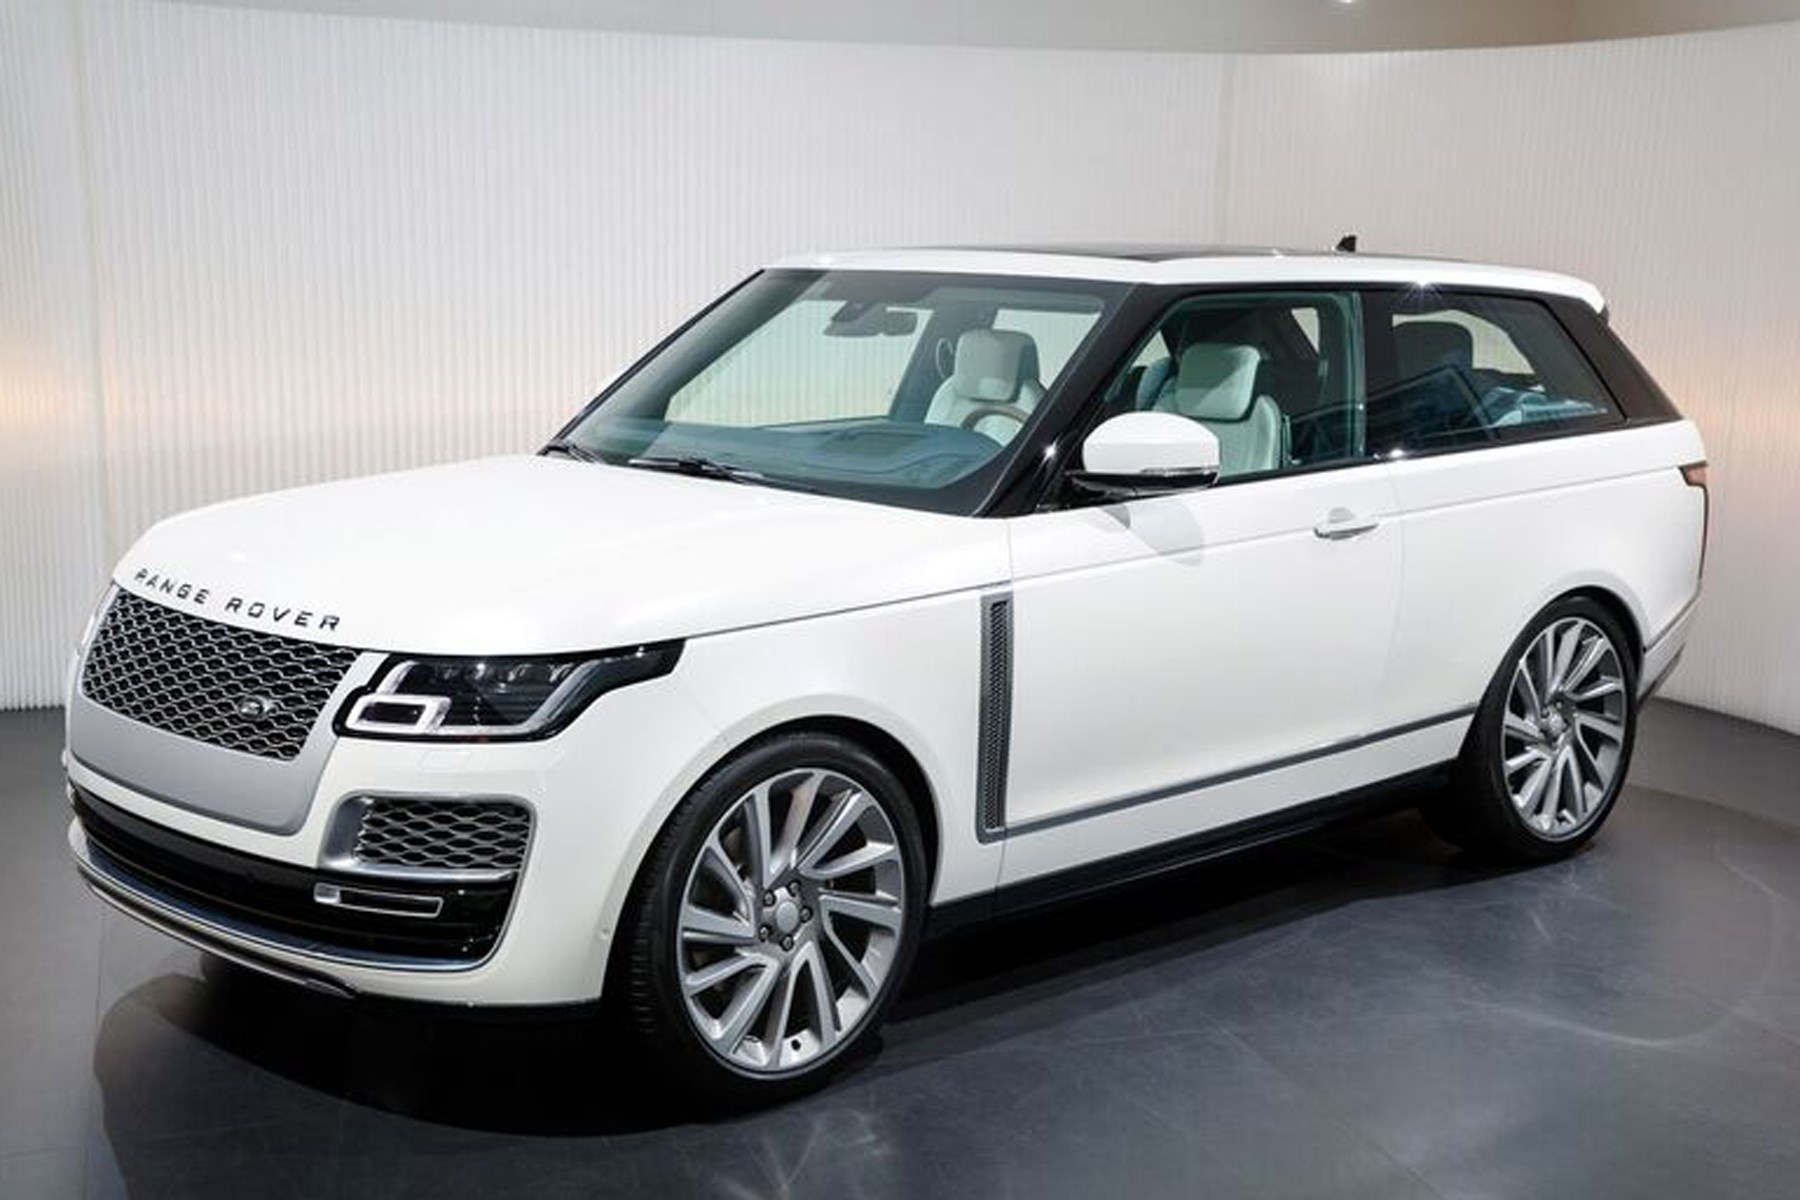 new range rover sv coupe news pictures specs prices car magazine. Black Bedroom Furniture Sets. Home Design Ideas